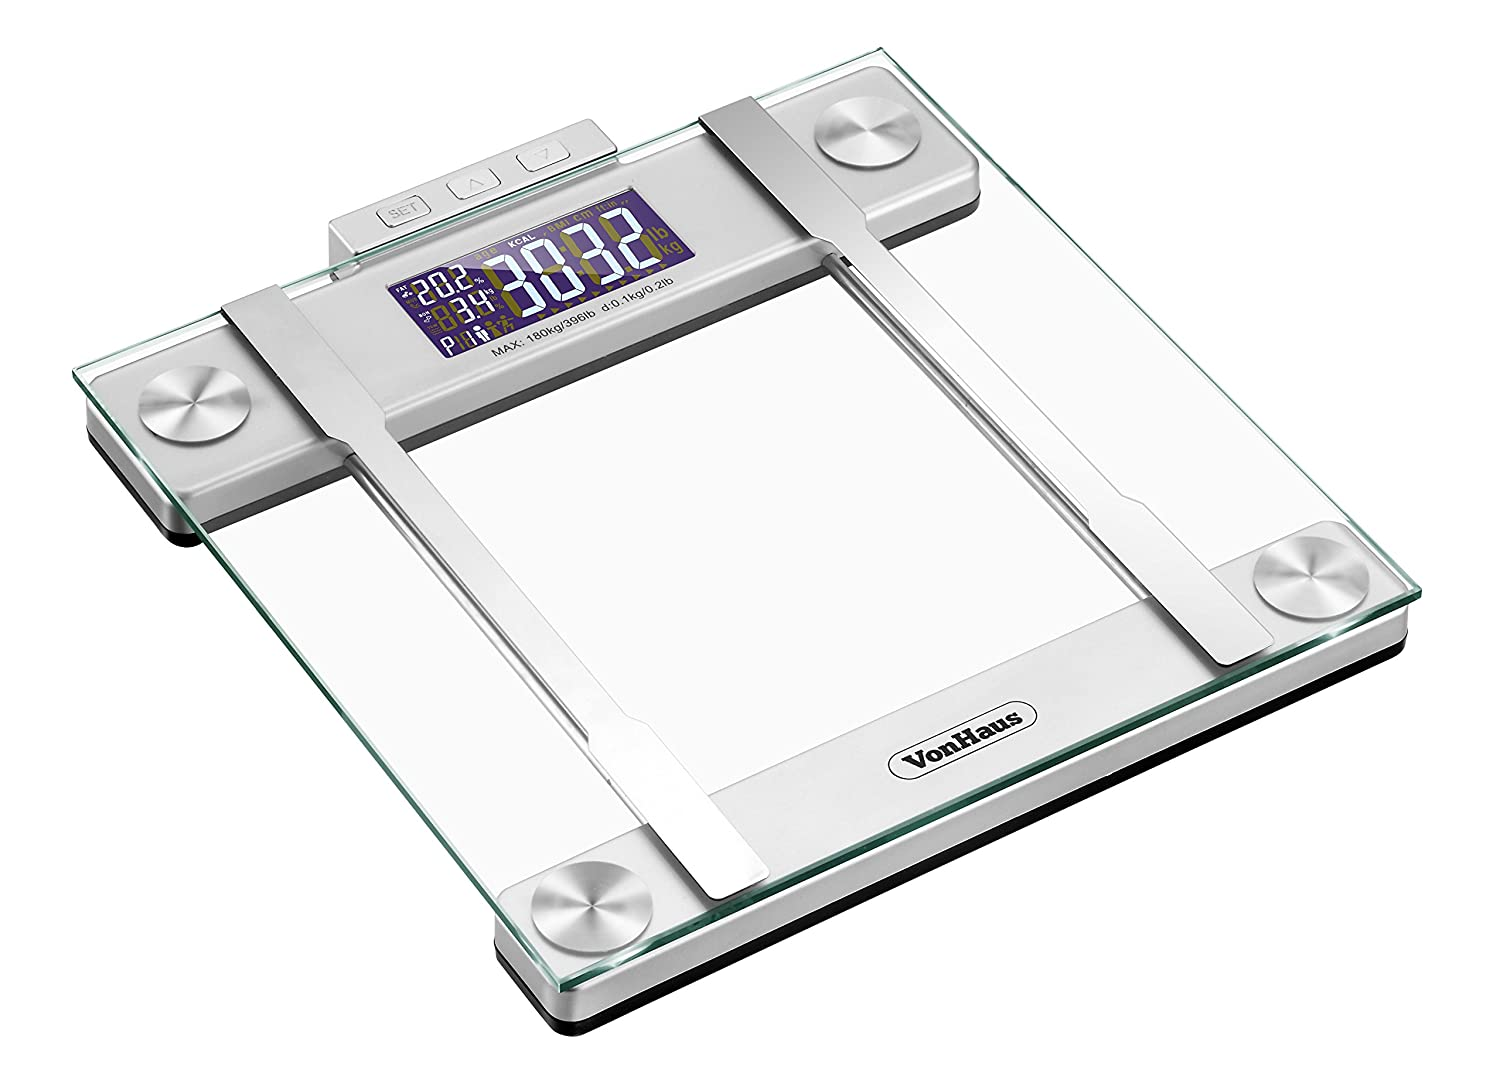 Amazon scale bathroom - Amazon Com Vonhaus Body Fat Scale Bmi Weight Scale With Body Composition Analyser Hydration Monitor 400lb Weight Capacity Silver Glass Bathroom Weight